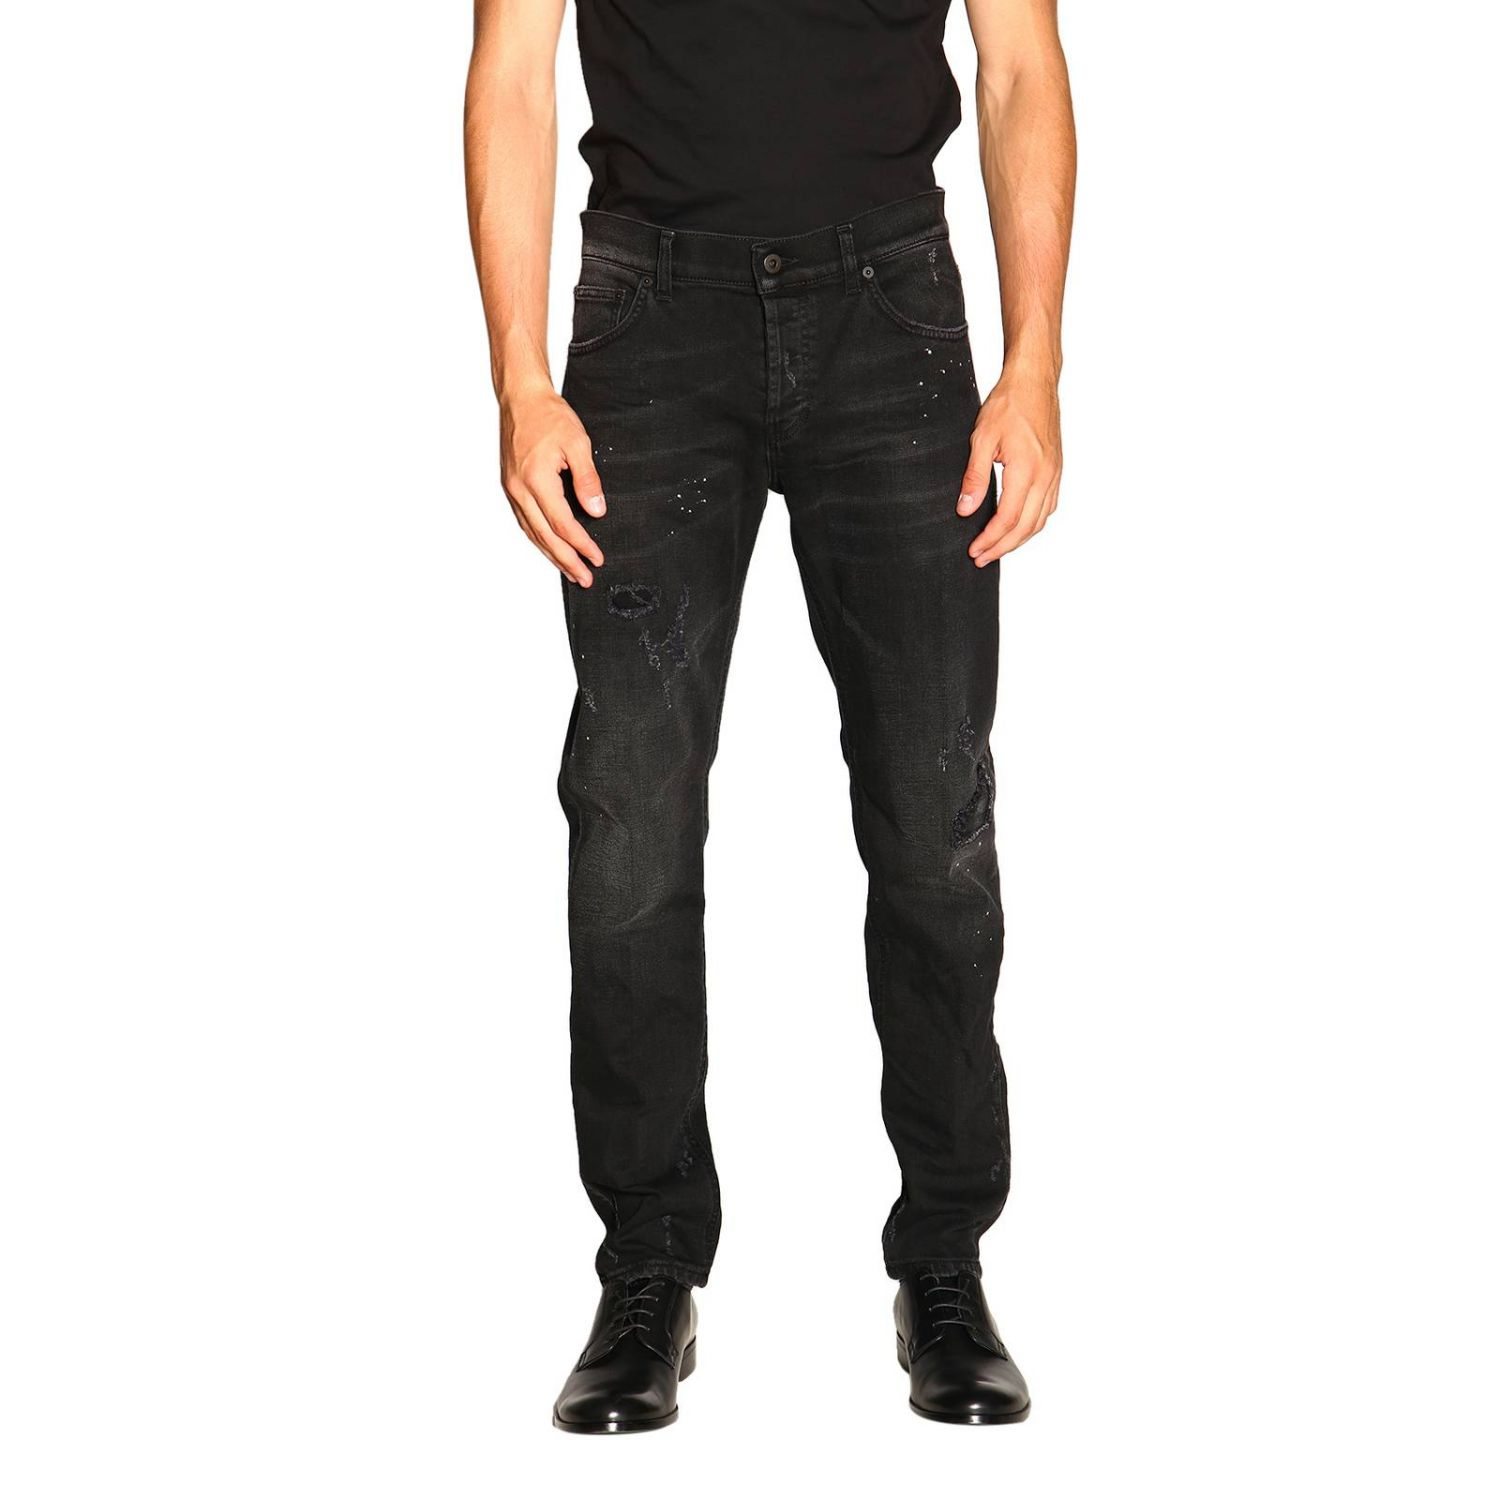 Jeans men Dondup black 1